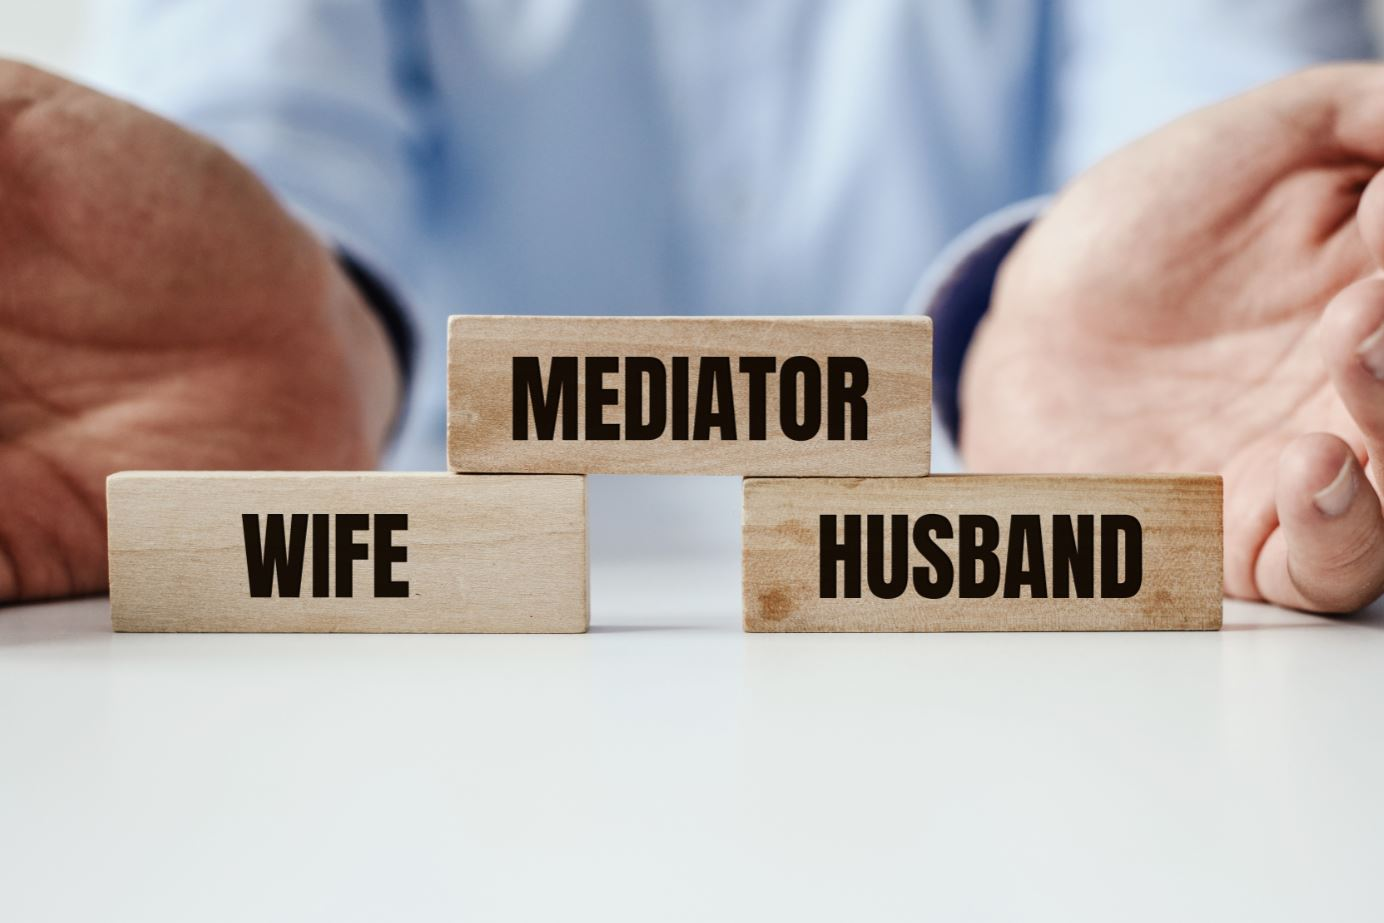 Image of wooden blocks with words relevant to Divorce Mediation.